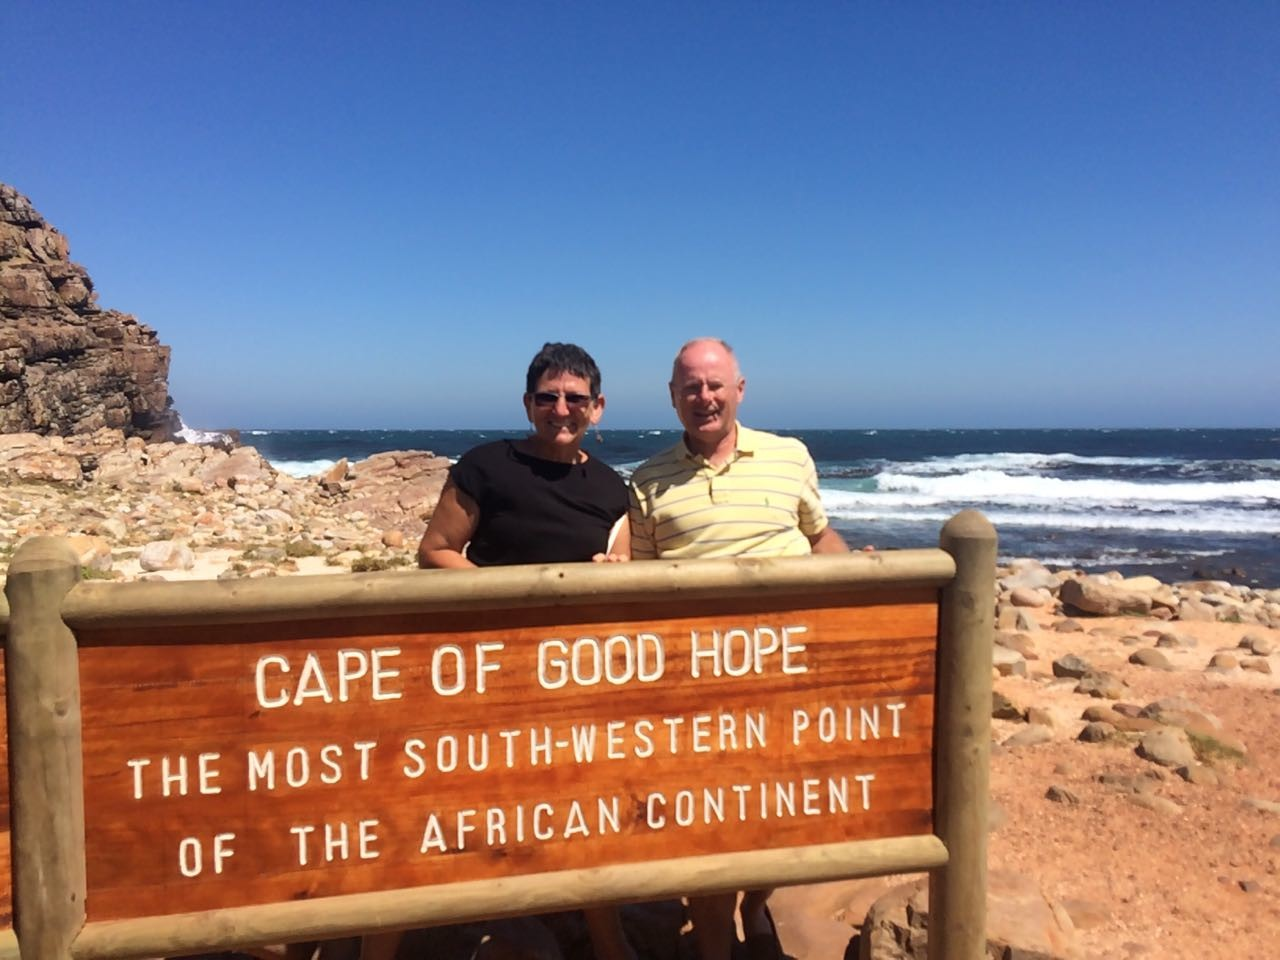 The edge of Africa